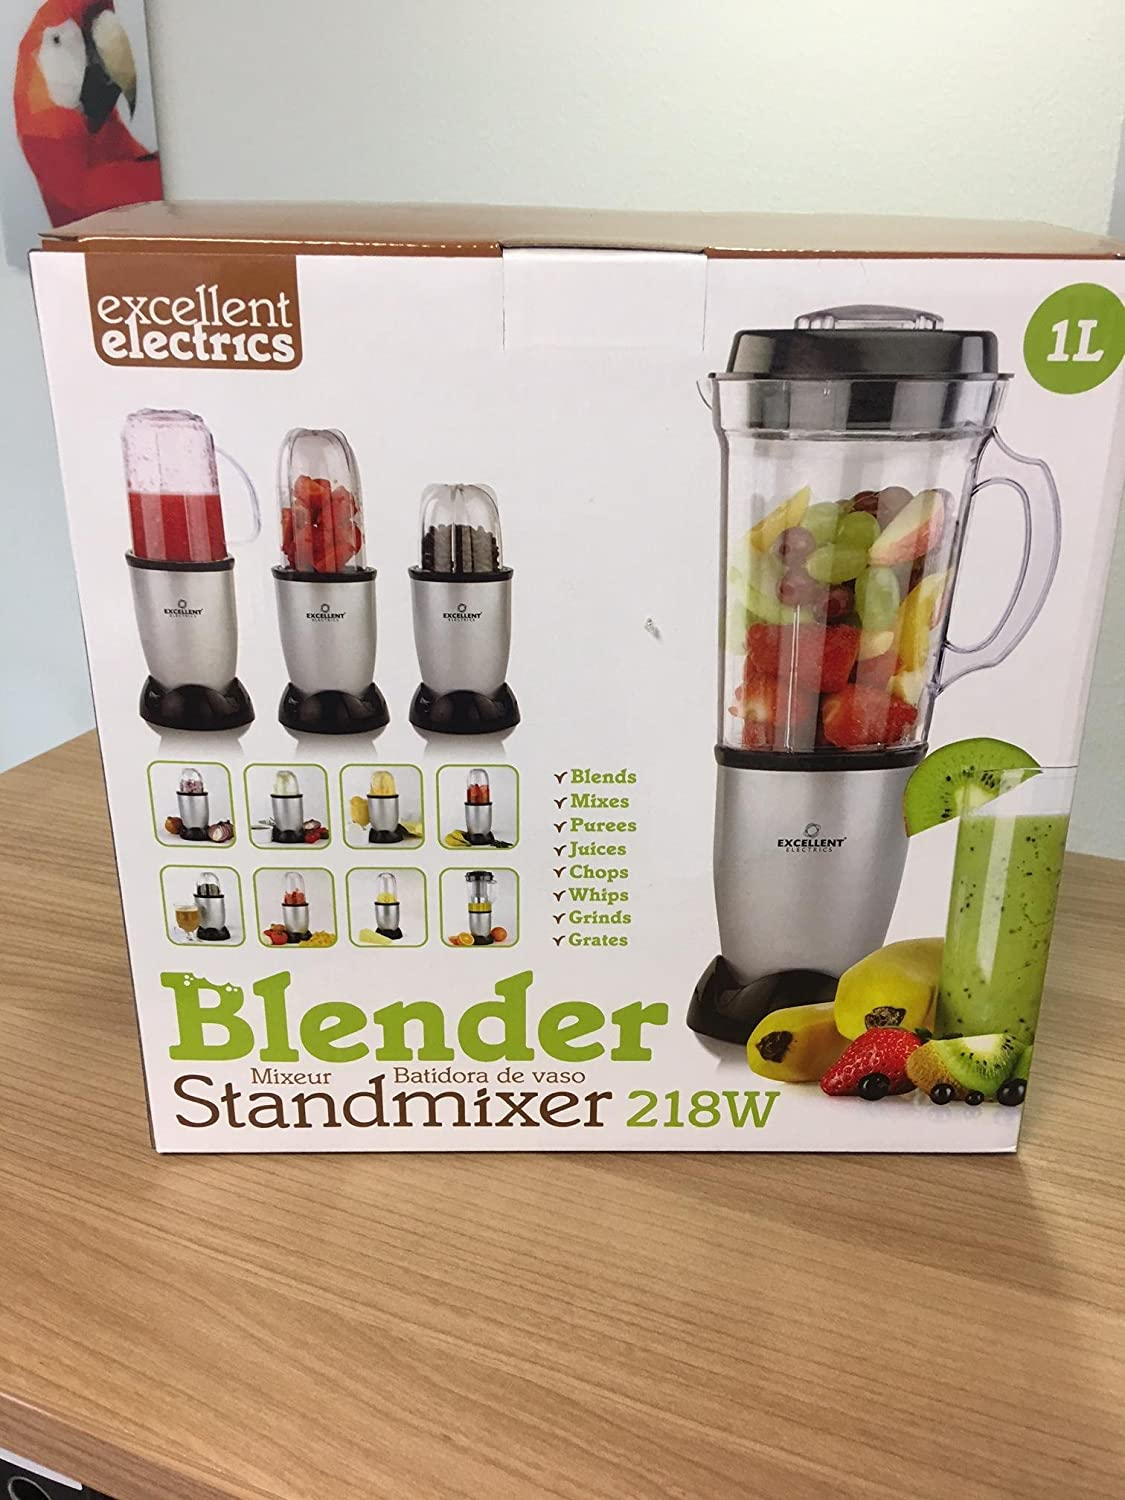 Batidora Smoothie maker Licuadora Blender Acero Inoxidable - 218 W - molali Edition: Amazon.es: Hogar